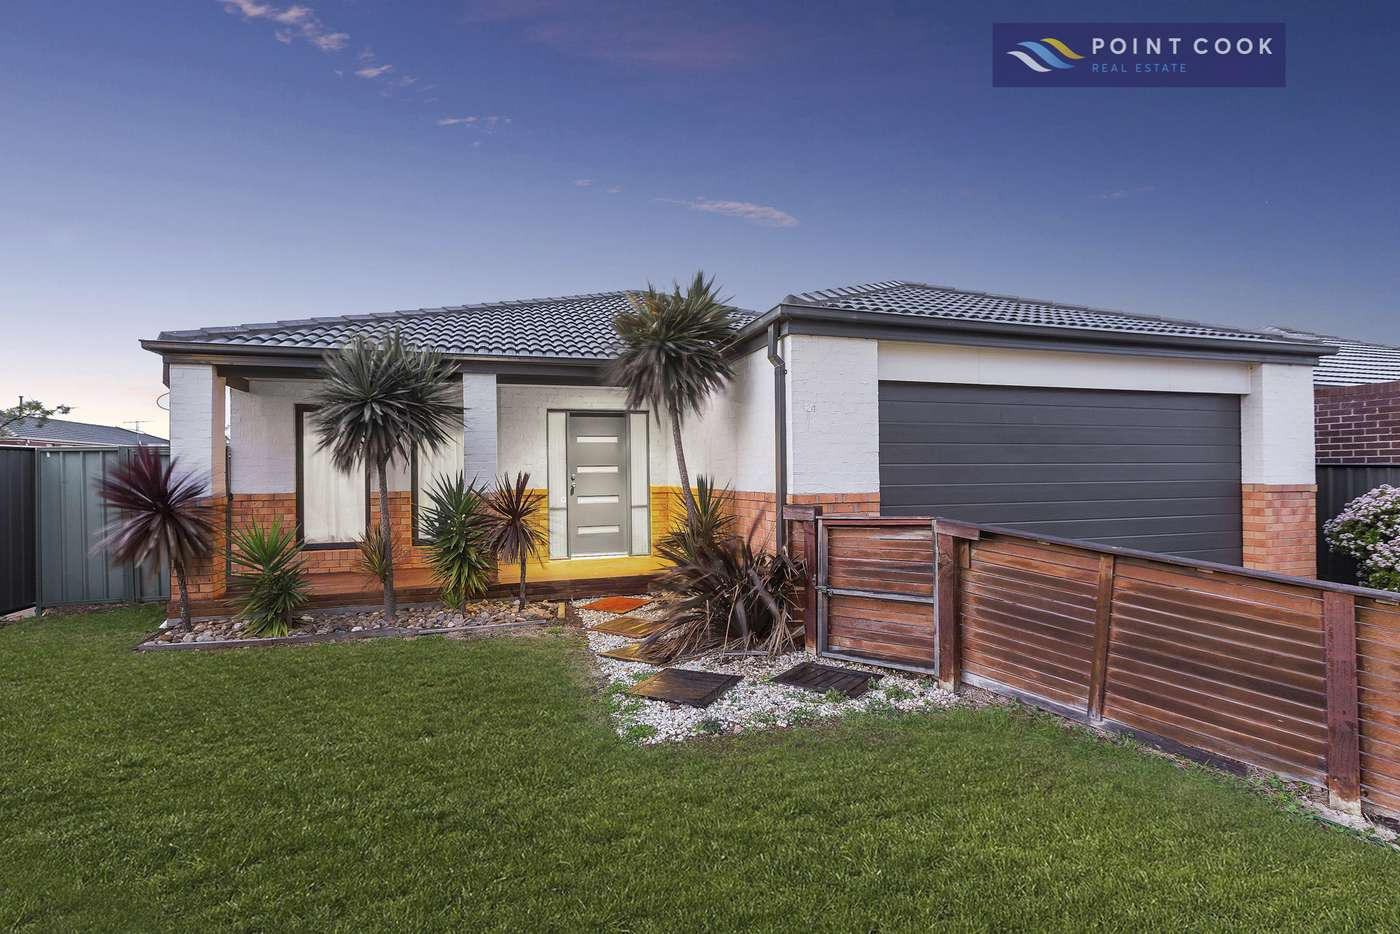 Main view of Homely house listing, 24 Caldicott Crescent, Point Cook VIC 3030